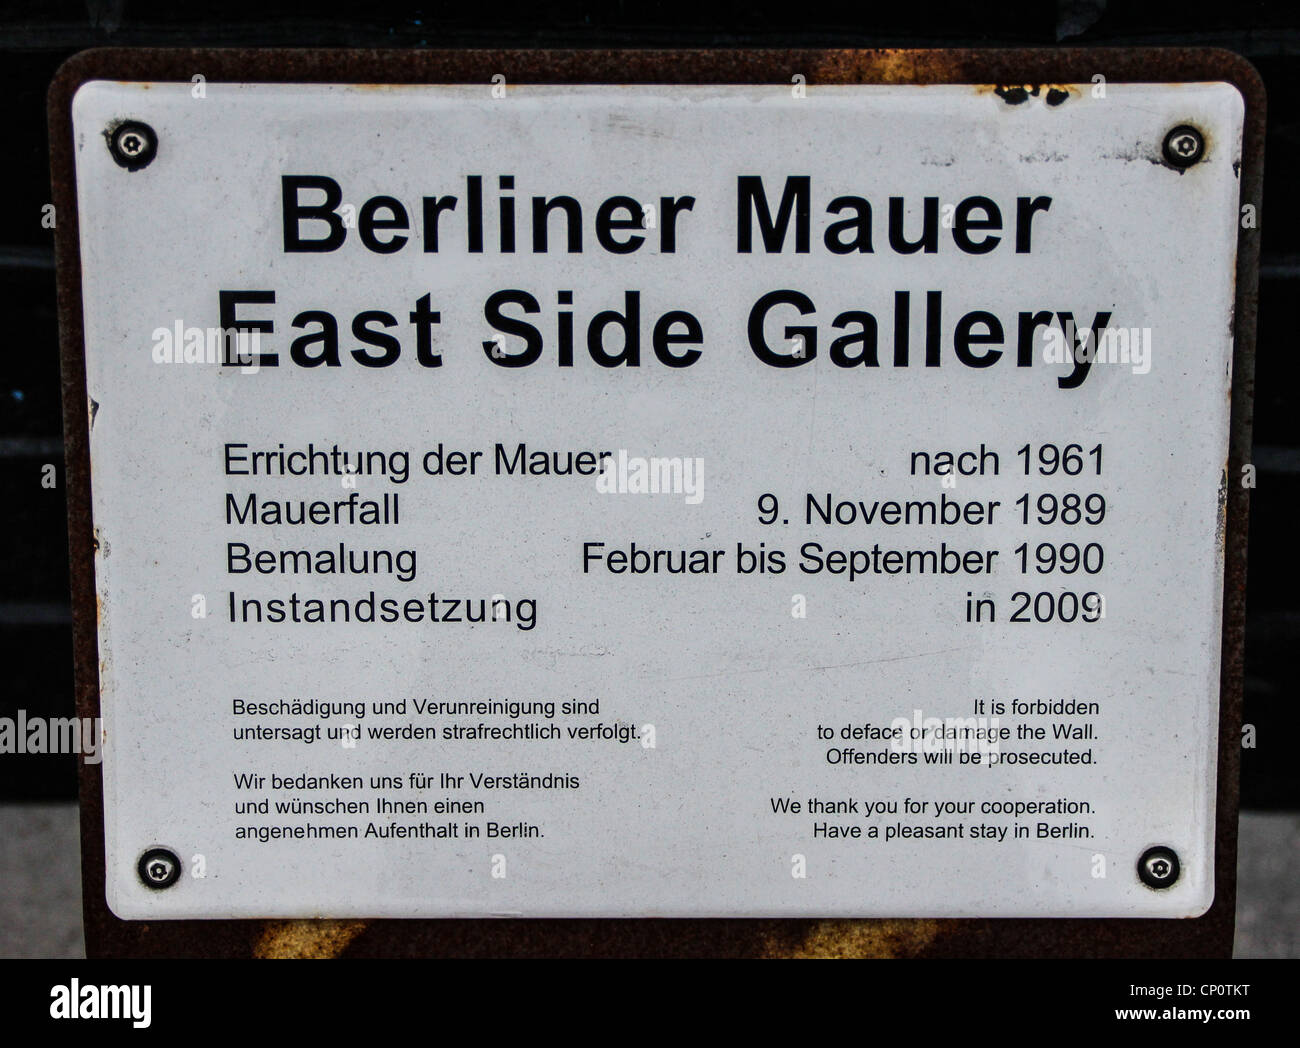 Plaque of the East Side gallery at the Berlin Wall in Germany - Stock Image